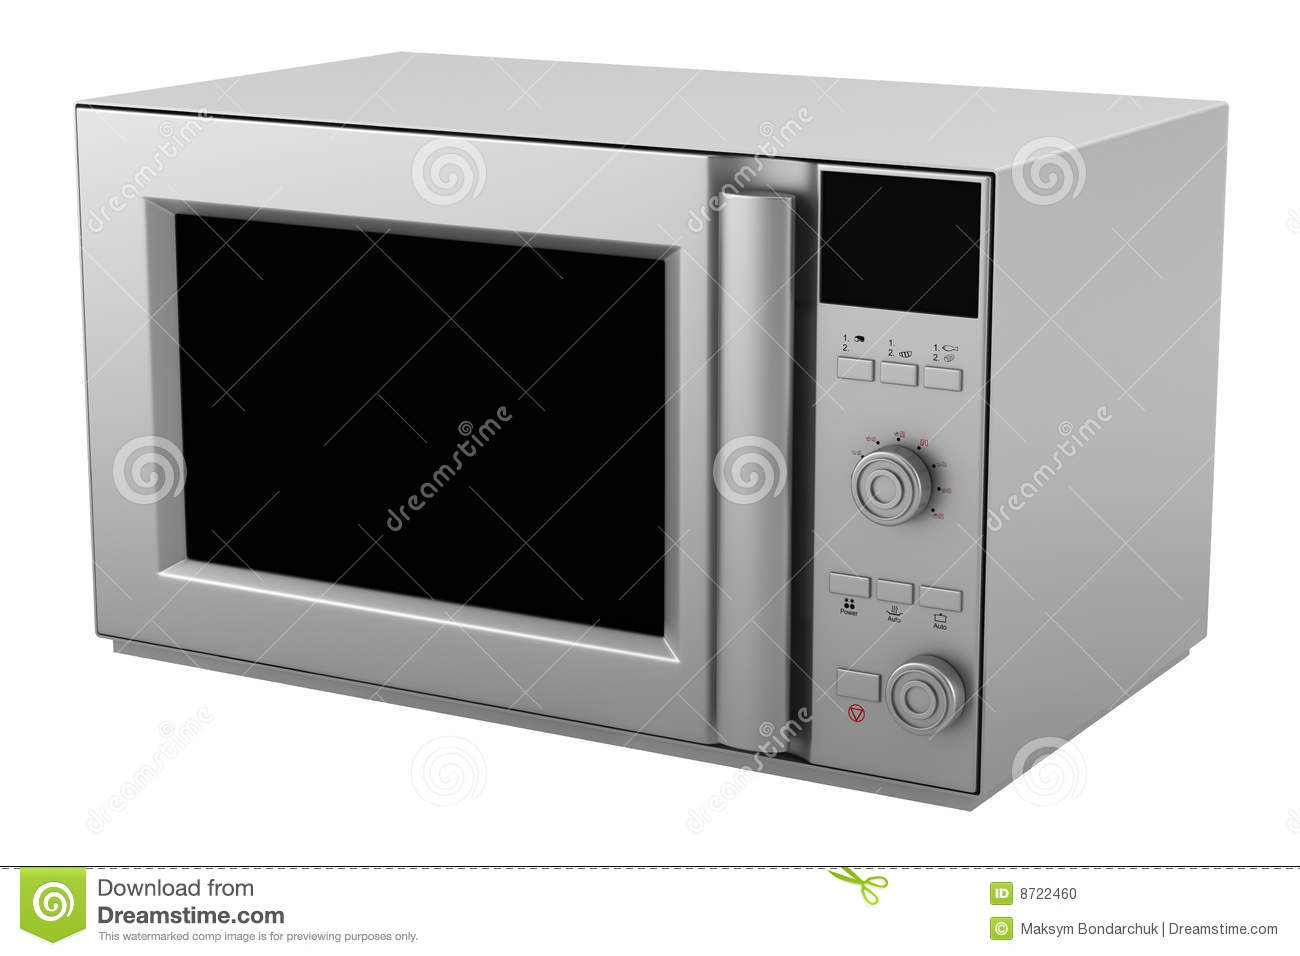 Microwave Oven Isolated On White Background Stock Photo